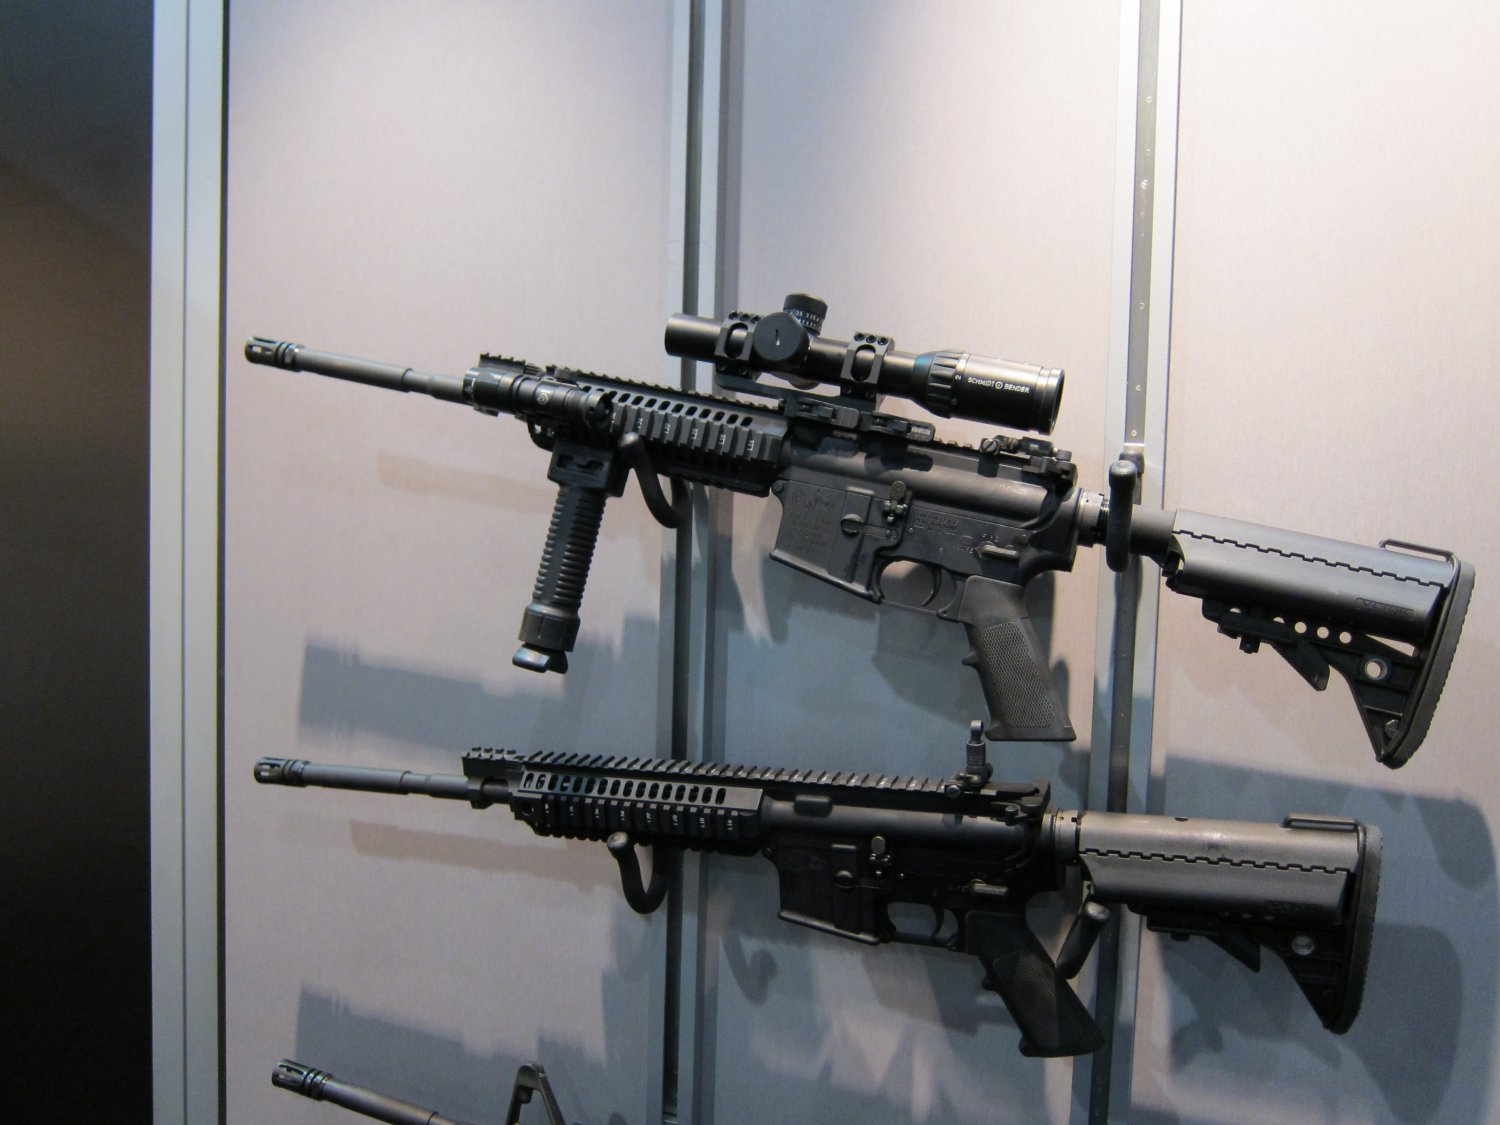 shot show 2010 colt tactical ar carbines 2 <!  :en  >Colt Defense Launches Colt Tactical Carbines/Rifles for Civilian Tactical Shooters at SHOT Show 2010: Tactical Guns Accessorized for Intensive Tactical Training<!  :  >